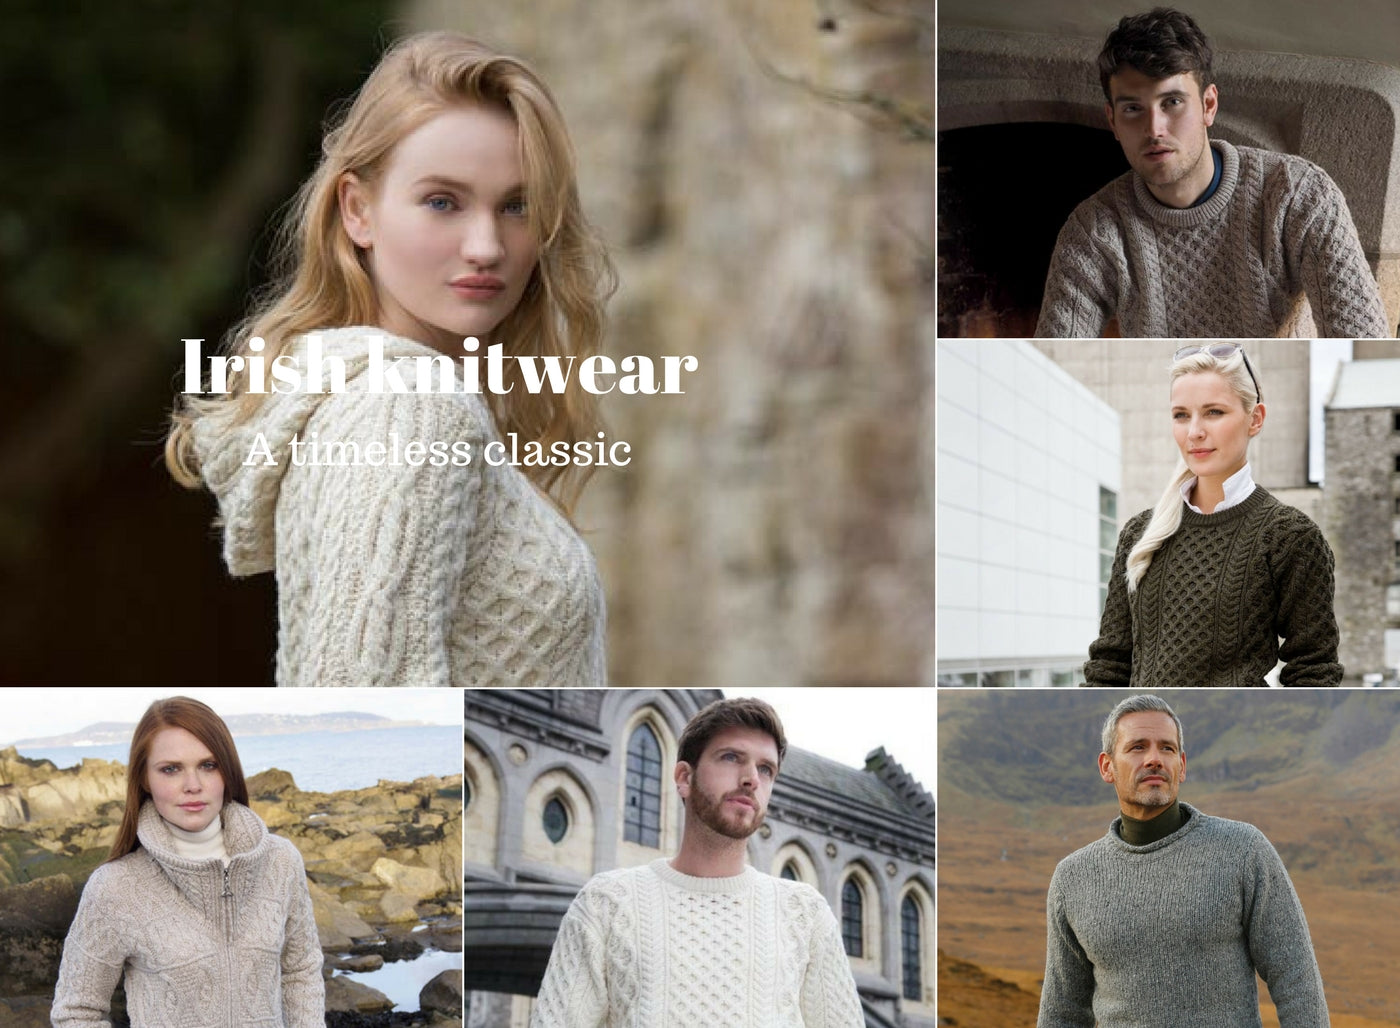 Irish Aran Knitwear, Aran sweaters, Irish sweaters Made in Ireland